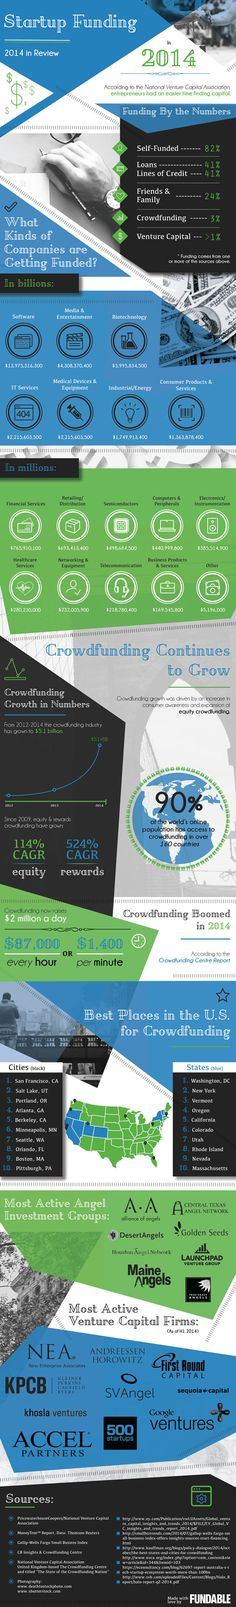 The Year in Startup Funding (Infographic)